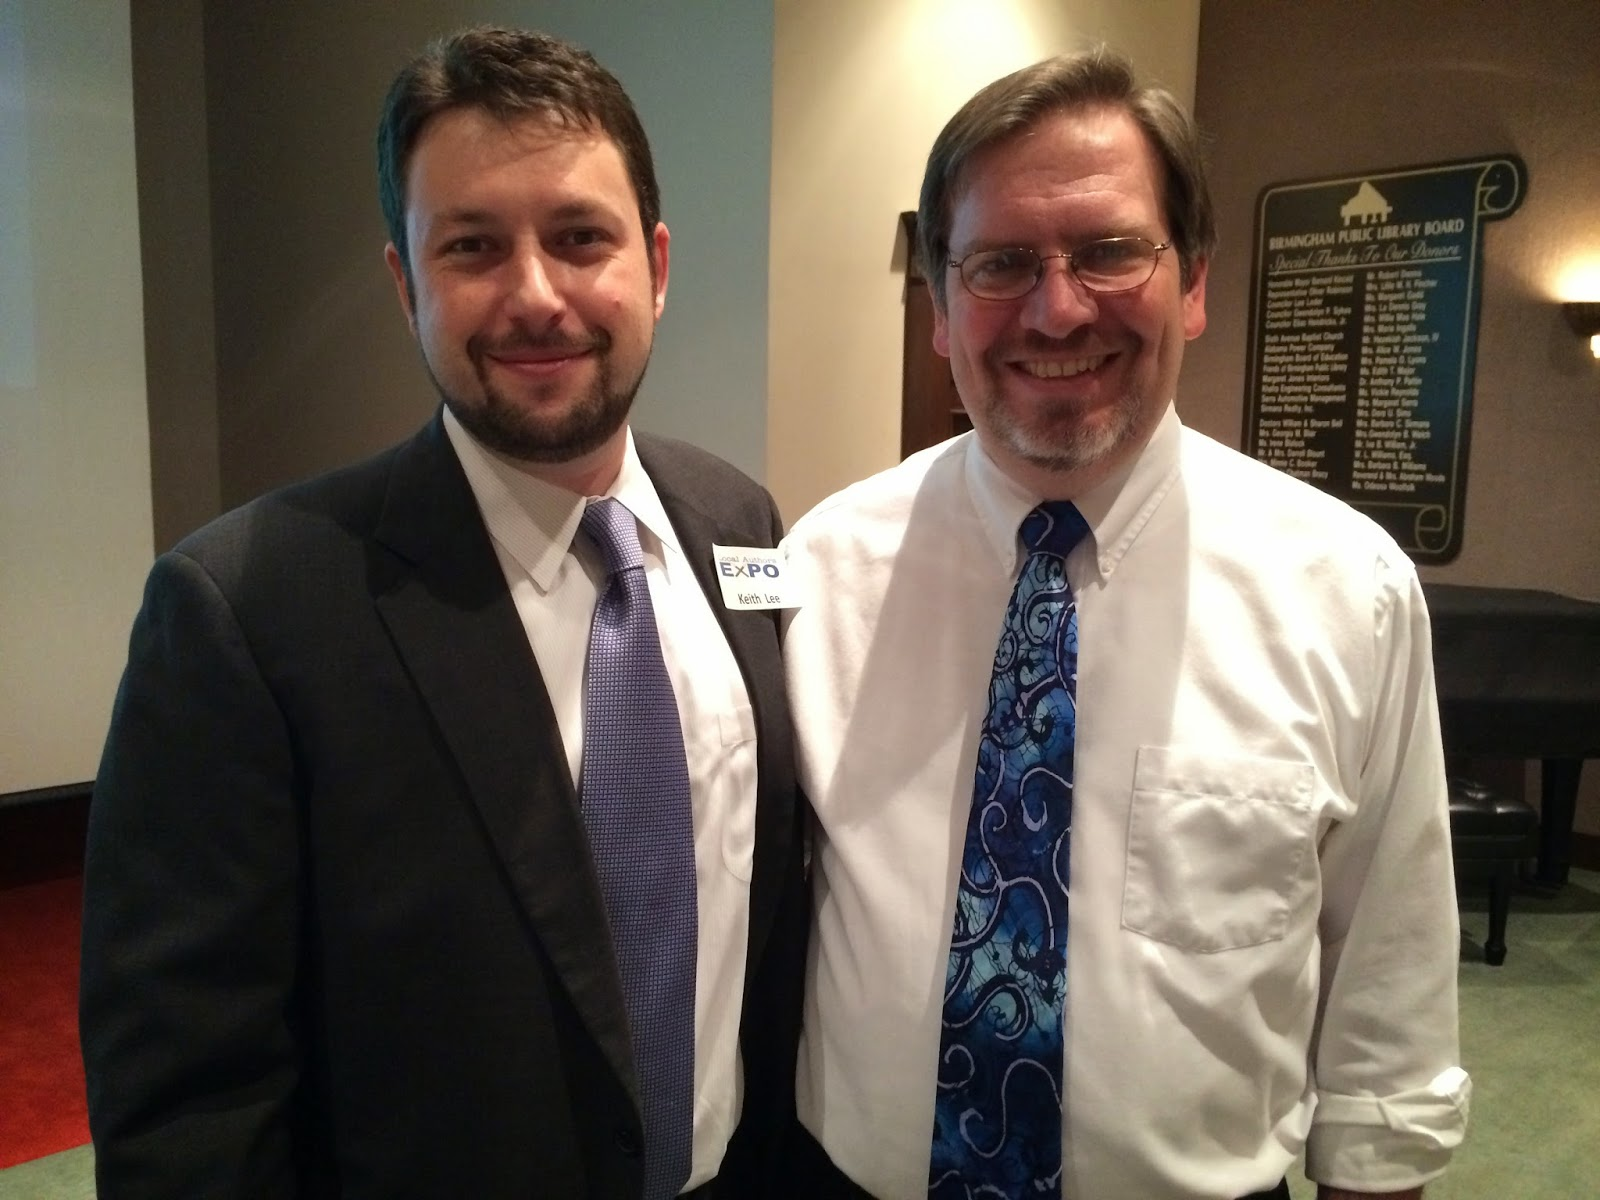 Speaker Keith Lee and Jared Millet